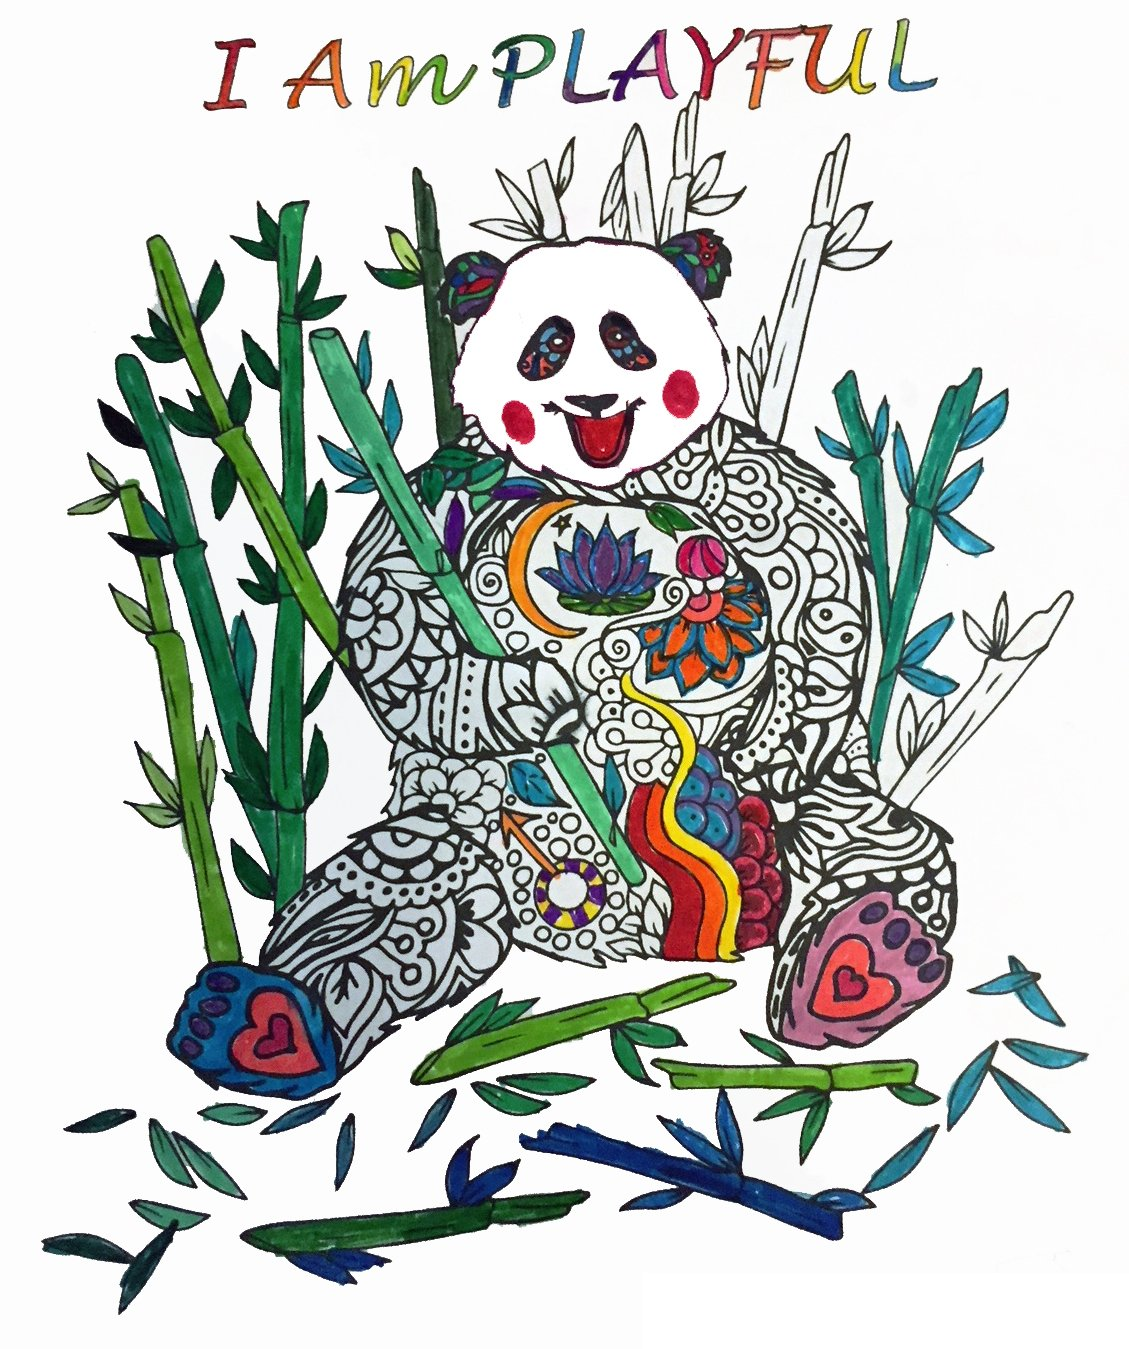 I Am PLAYFUL Purpose: To enjoy fun and adventure, freeing the inner child to frolic and fully engage all of the senses. Let the panda guide you back to reclaim the joyful sacred terrain of your inner child, letting go of what no longer serves your highest good.